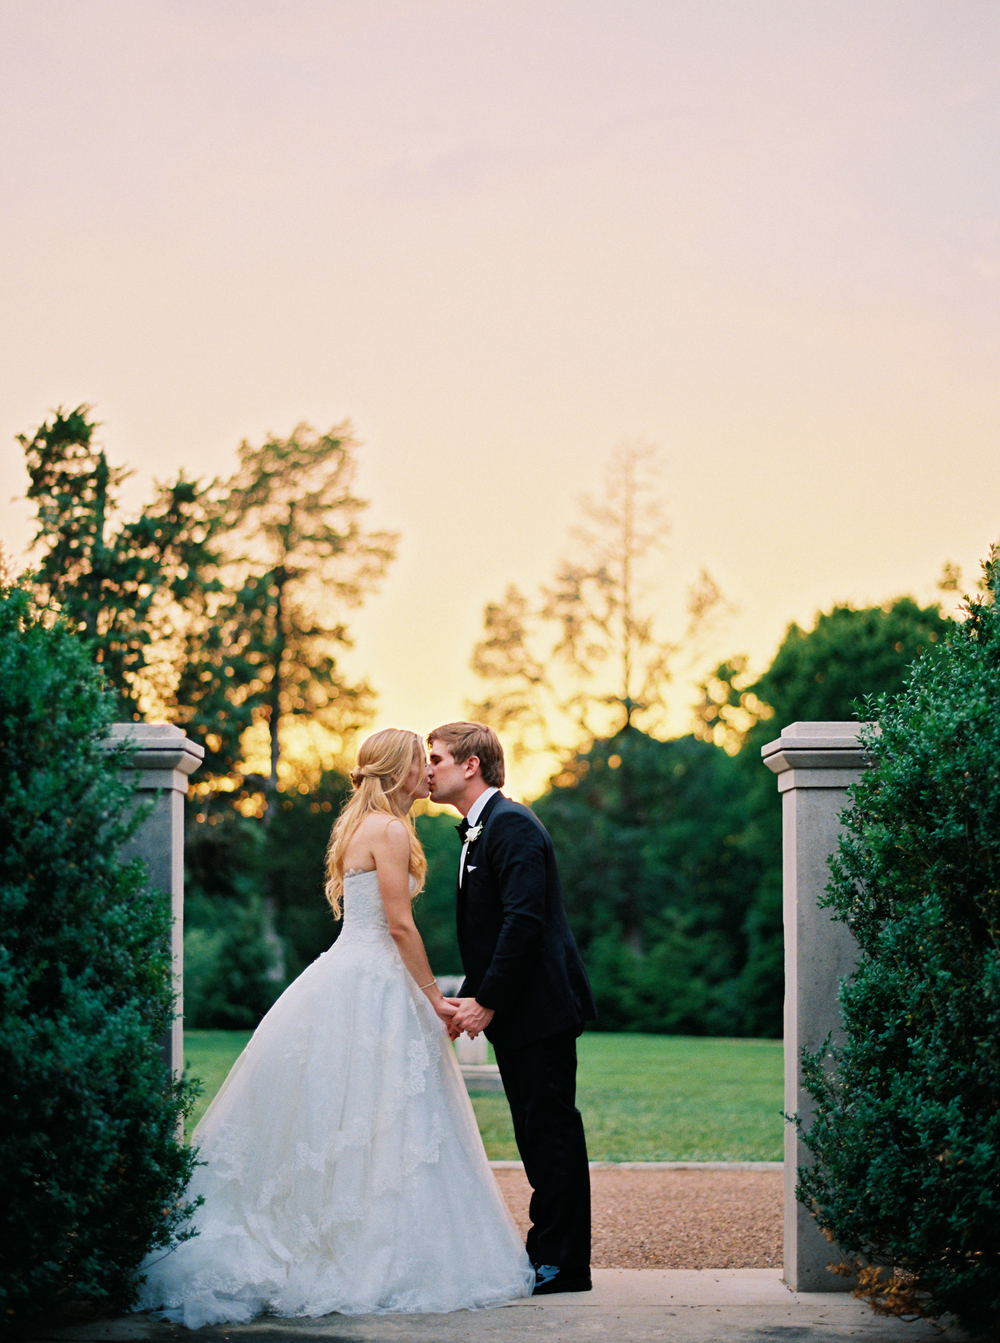 kathleen_and_joe_atkins_jo_photo_pv_takeover_contax645_portra800_belle_meade_plantation_nashville_tennessee_stunning_events_alter_my_heart_ines_di_santo_sp3000_photovisionprints.jpg